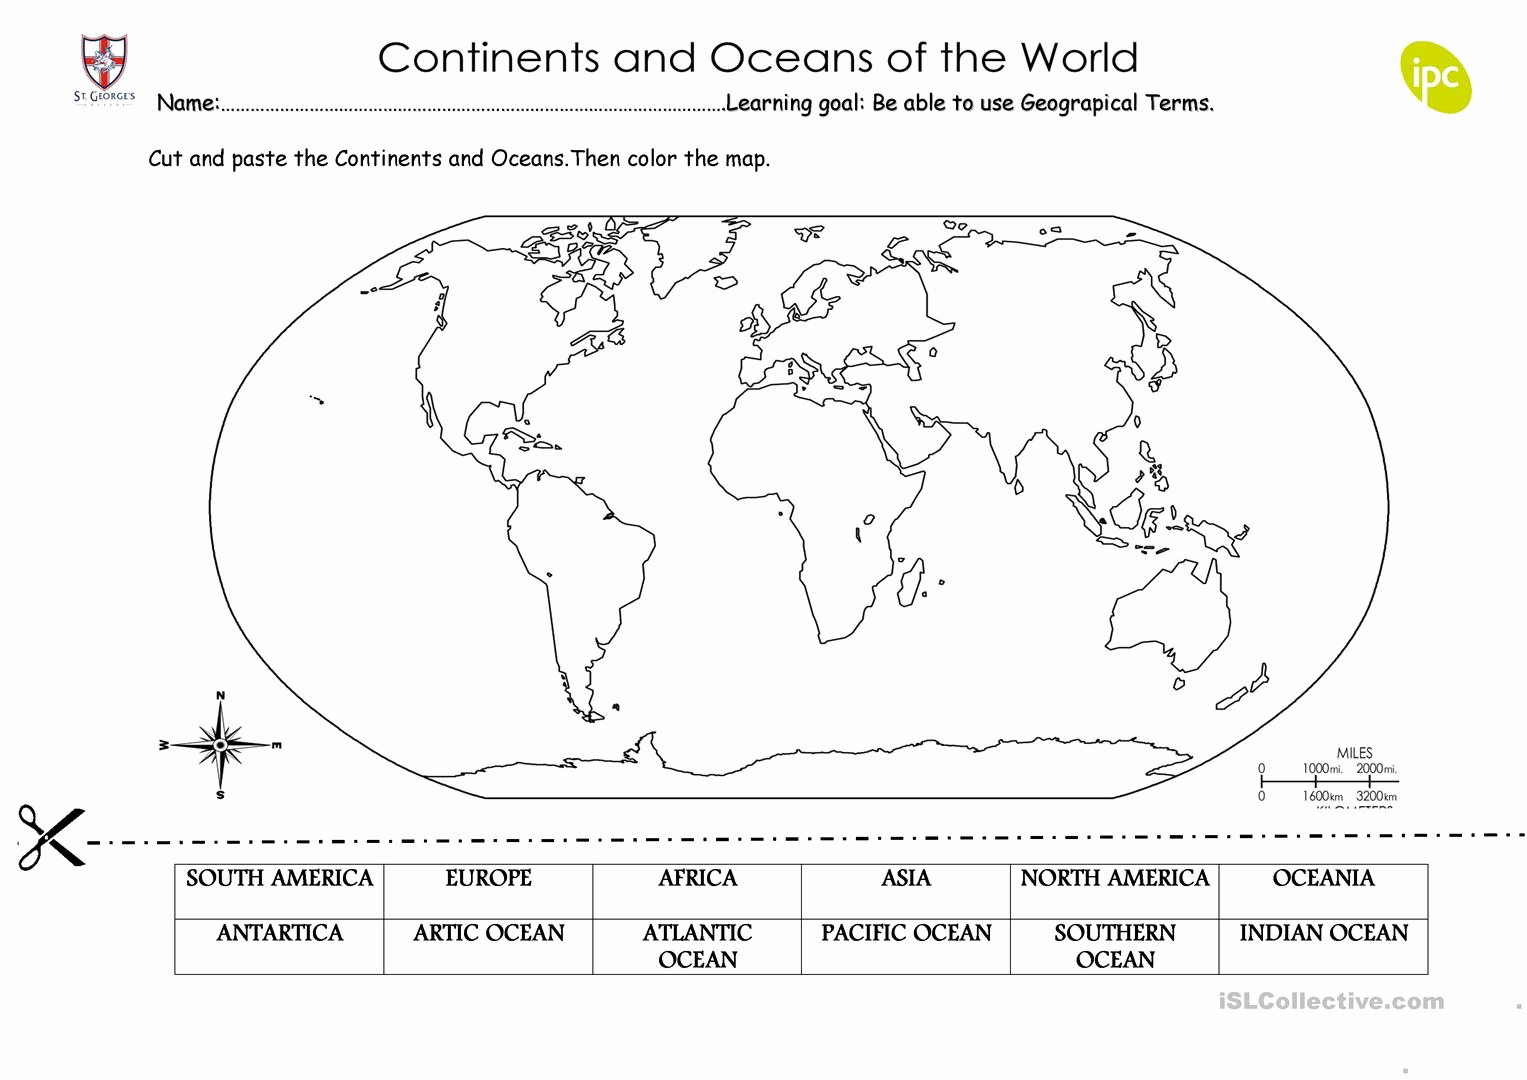 Continents and Oceans Worksheet Printable Best Of 35 Label the Continents and Oceans Worksheet Label